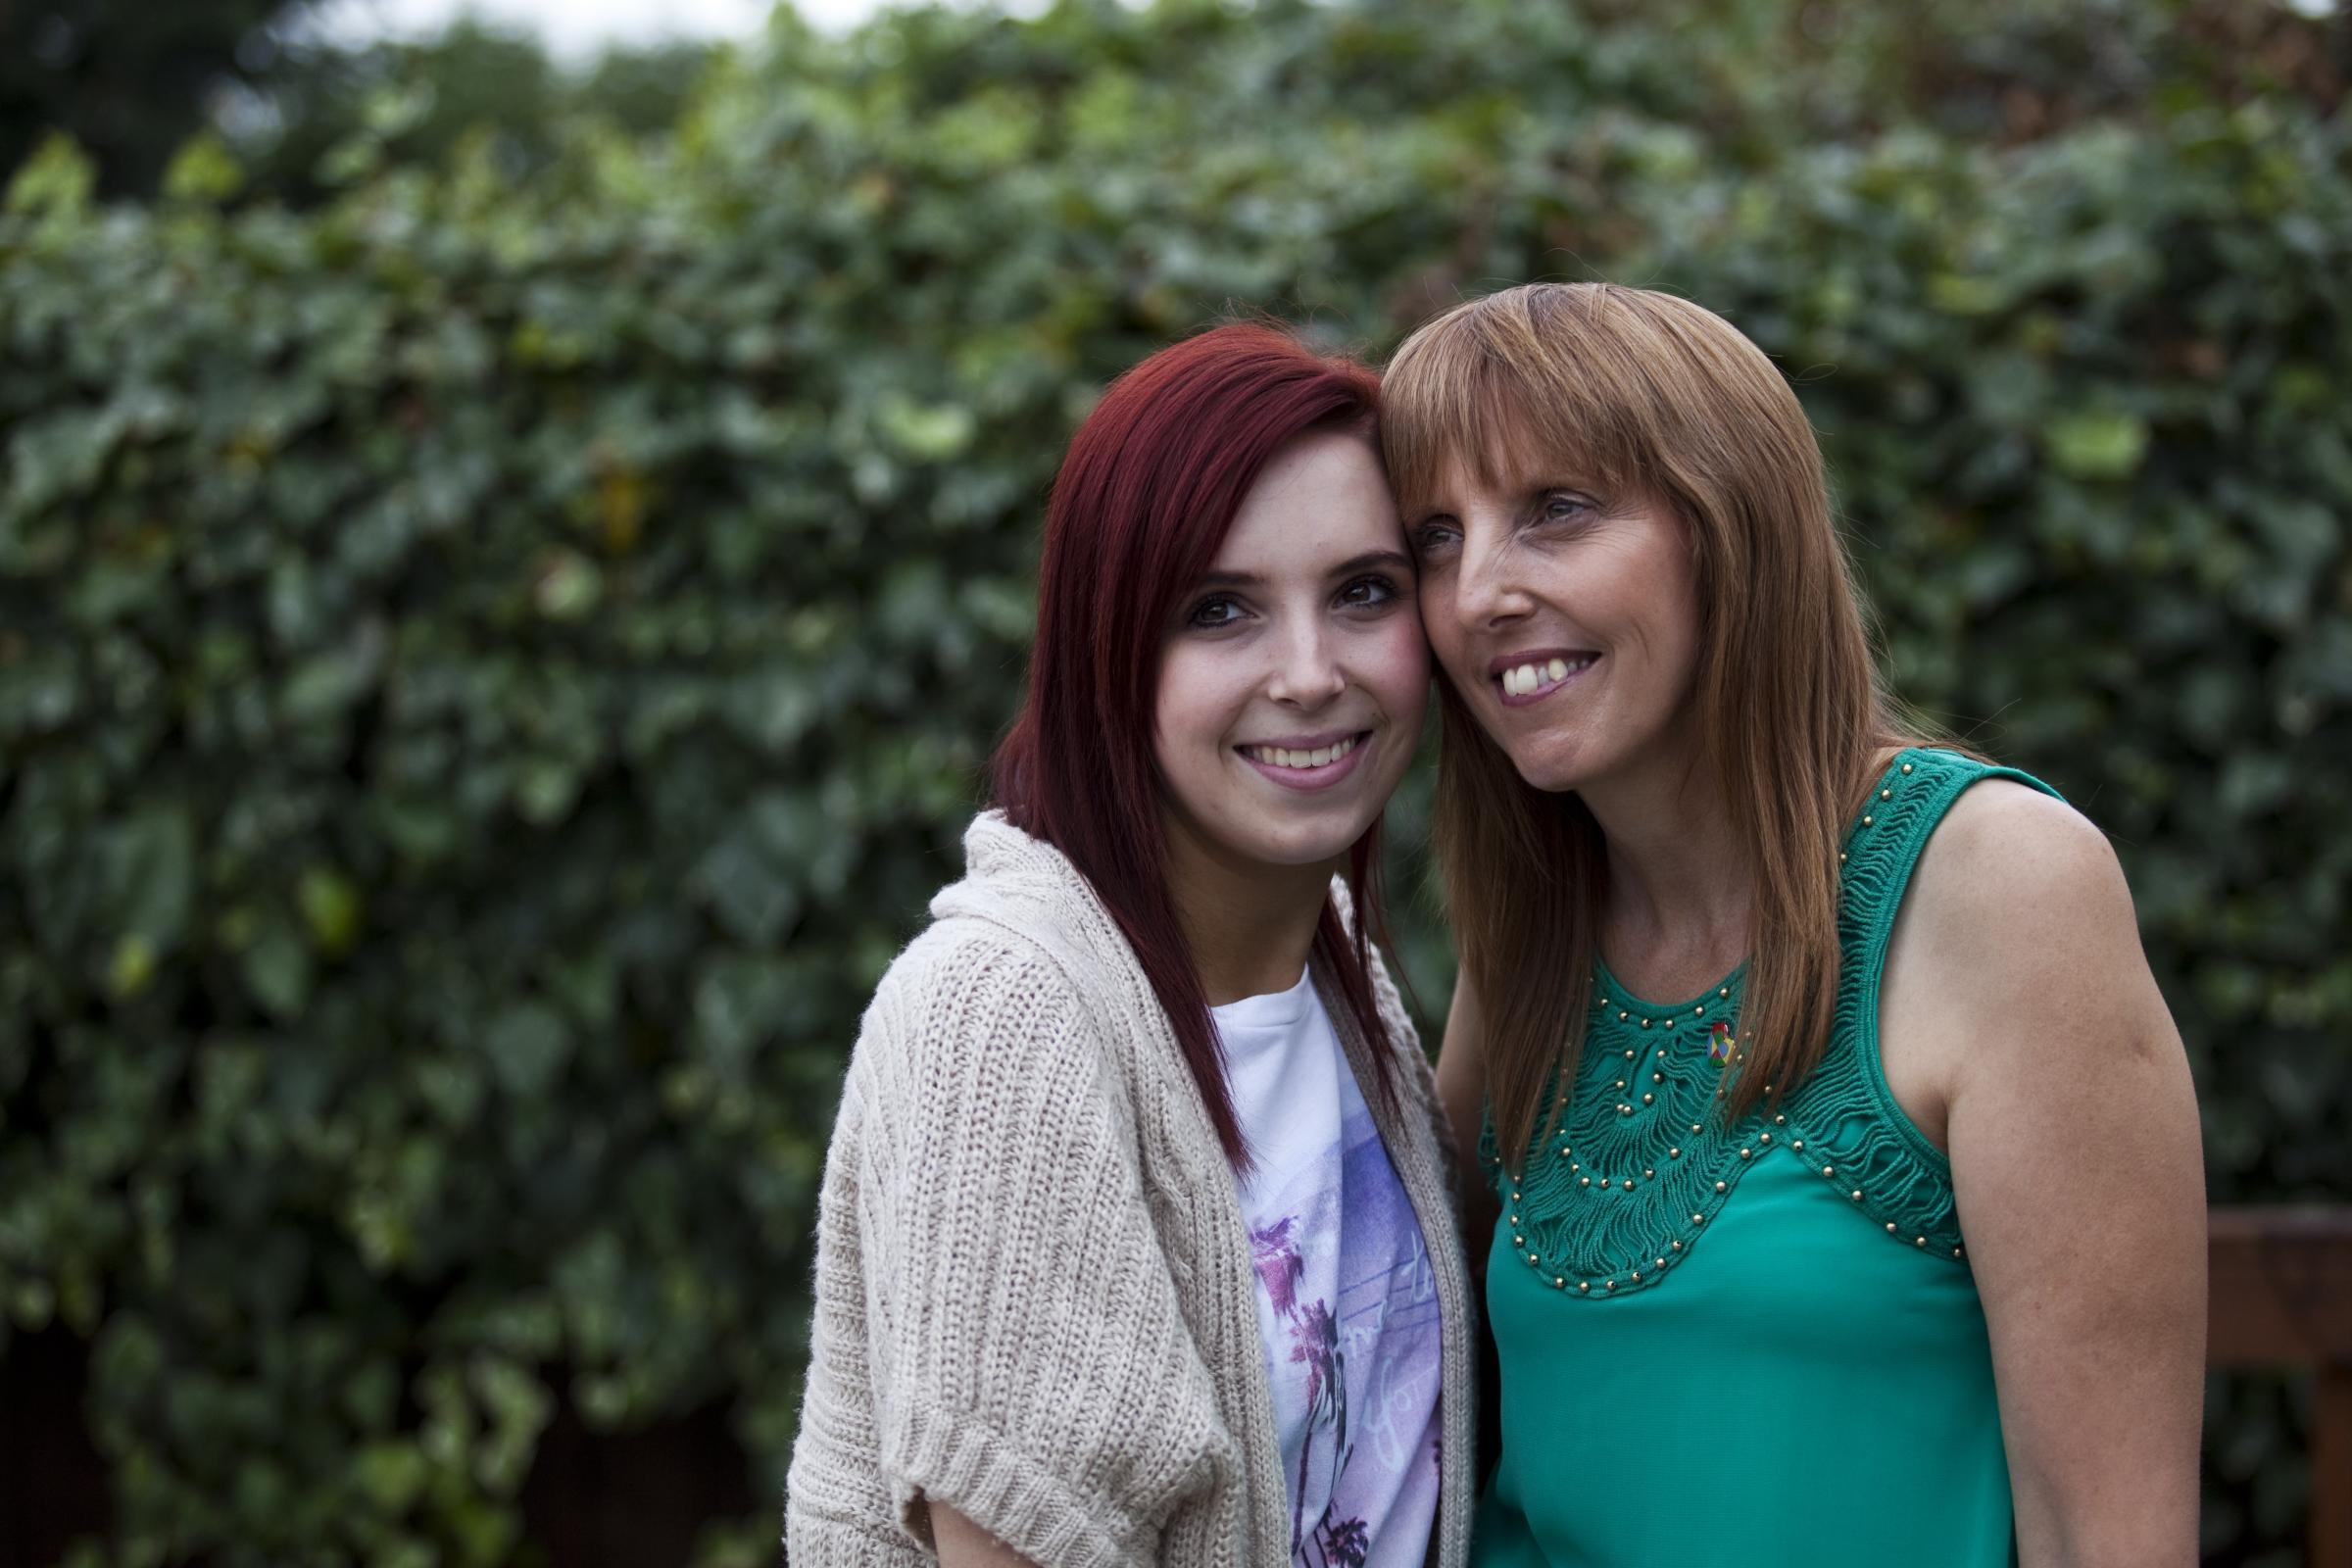 Teen's radio honour after caring for mum